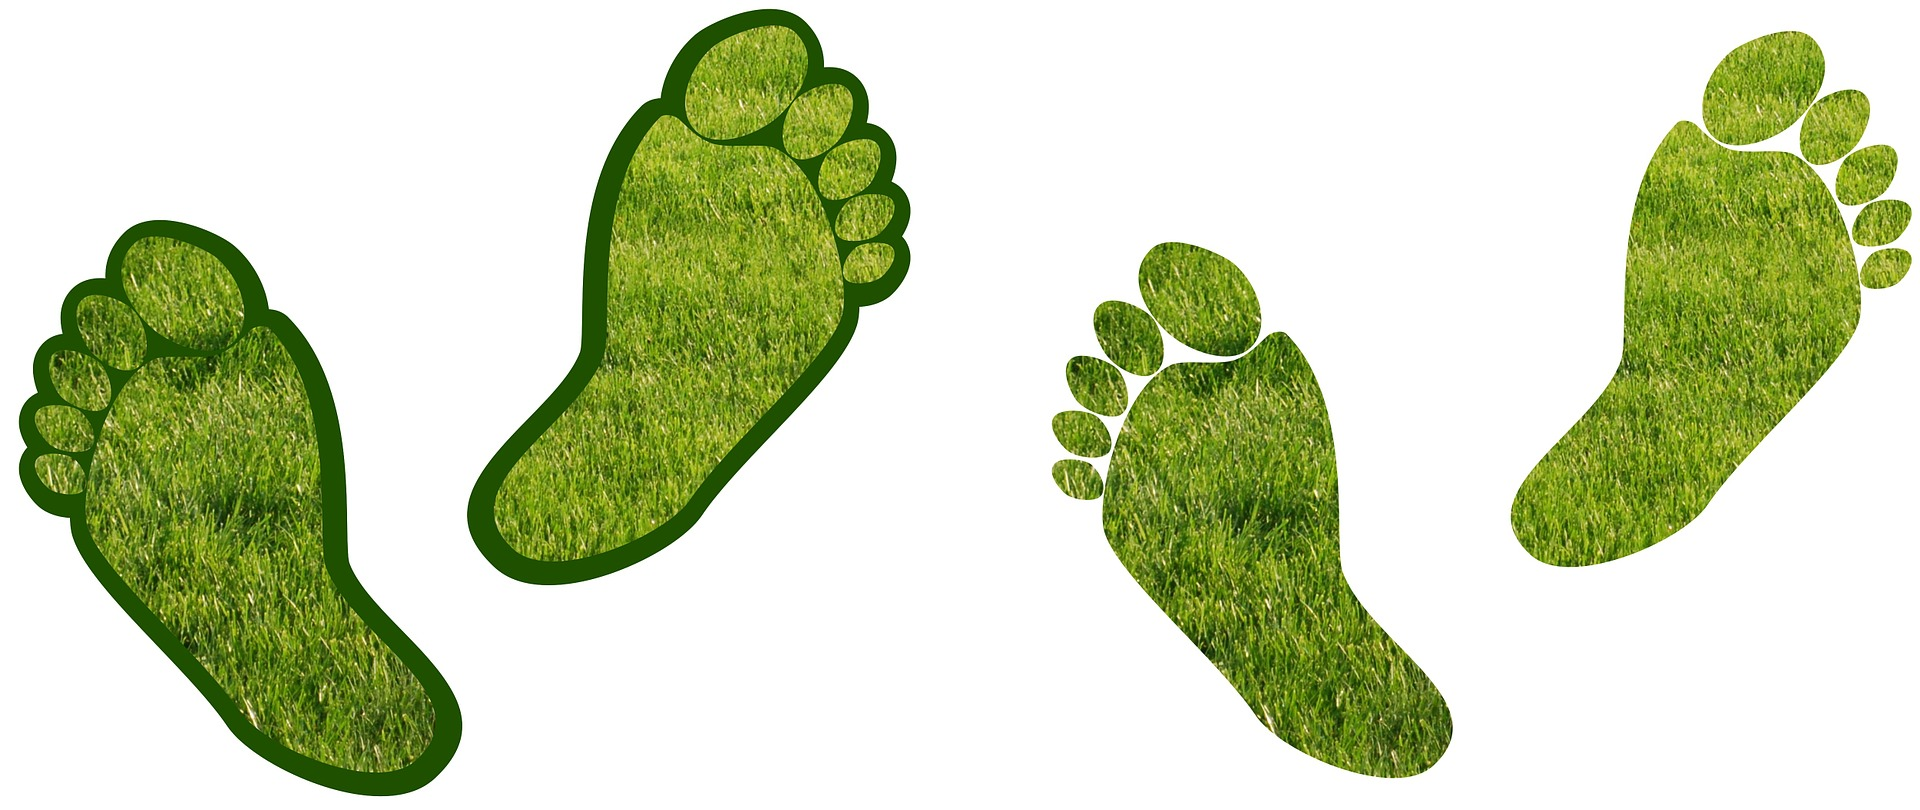 green feet carbon foot print reduced by insulation